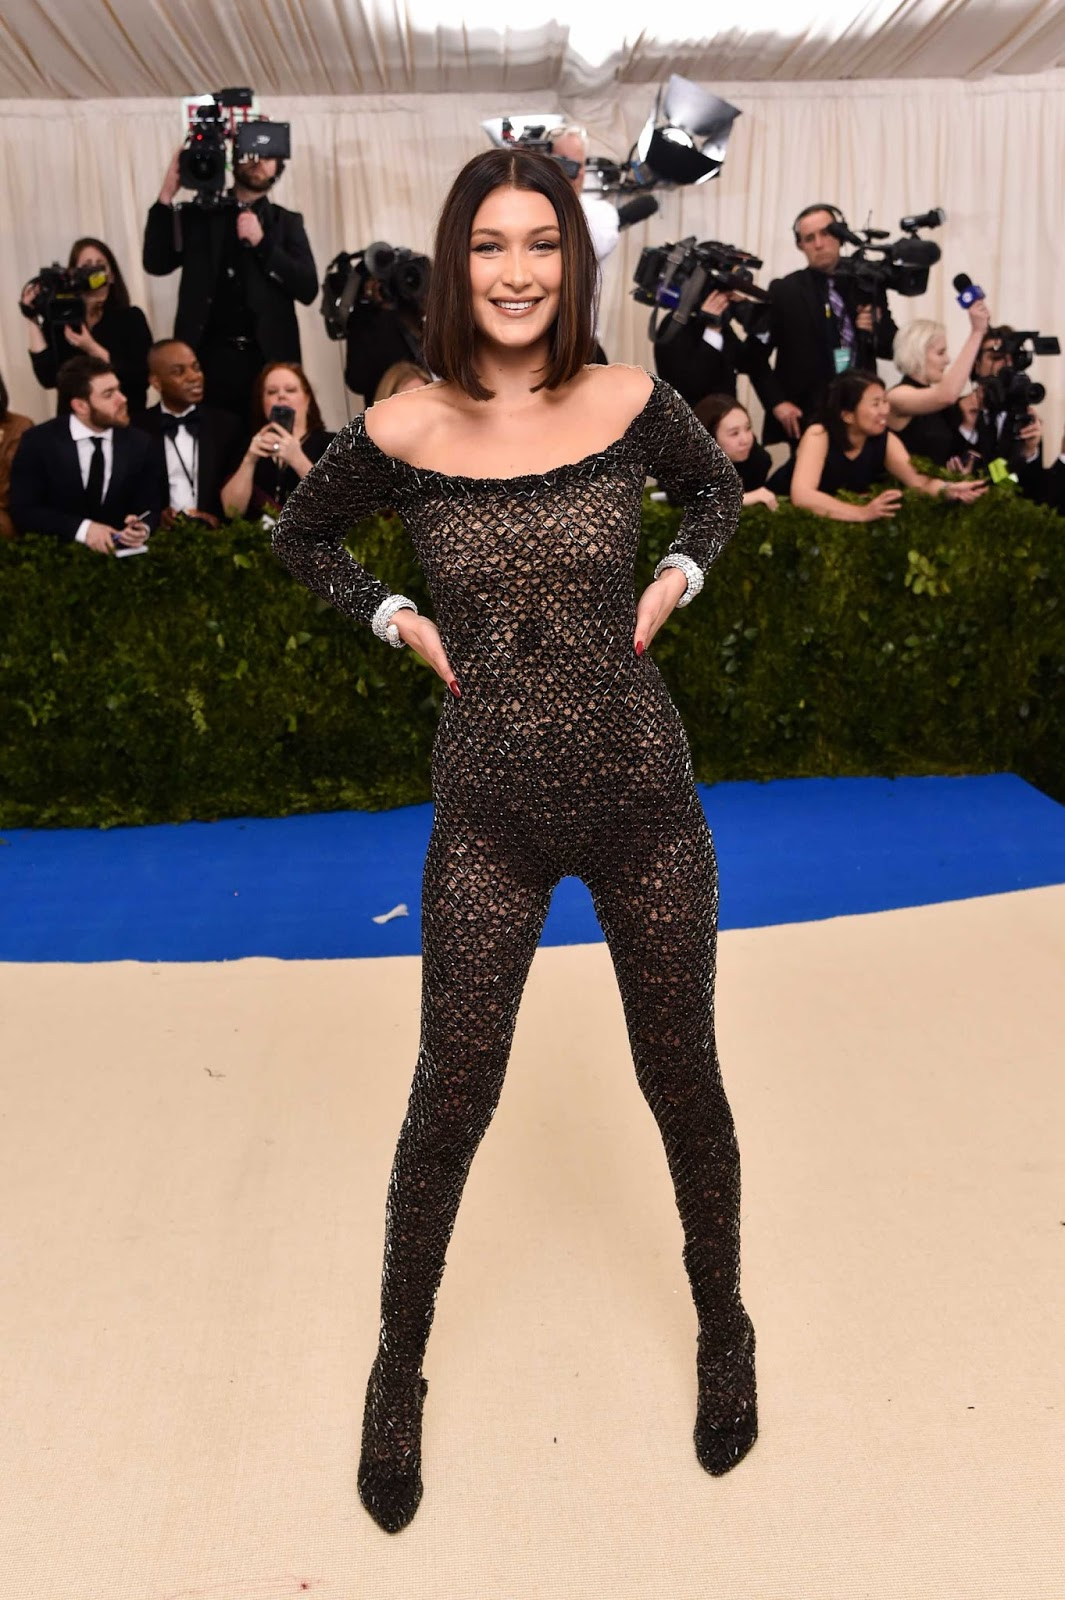 Bella Hadid arrives at the 2017 Met Gala in sexy catsuit